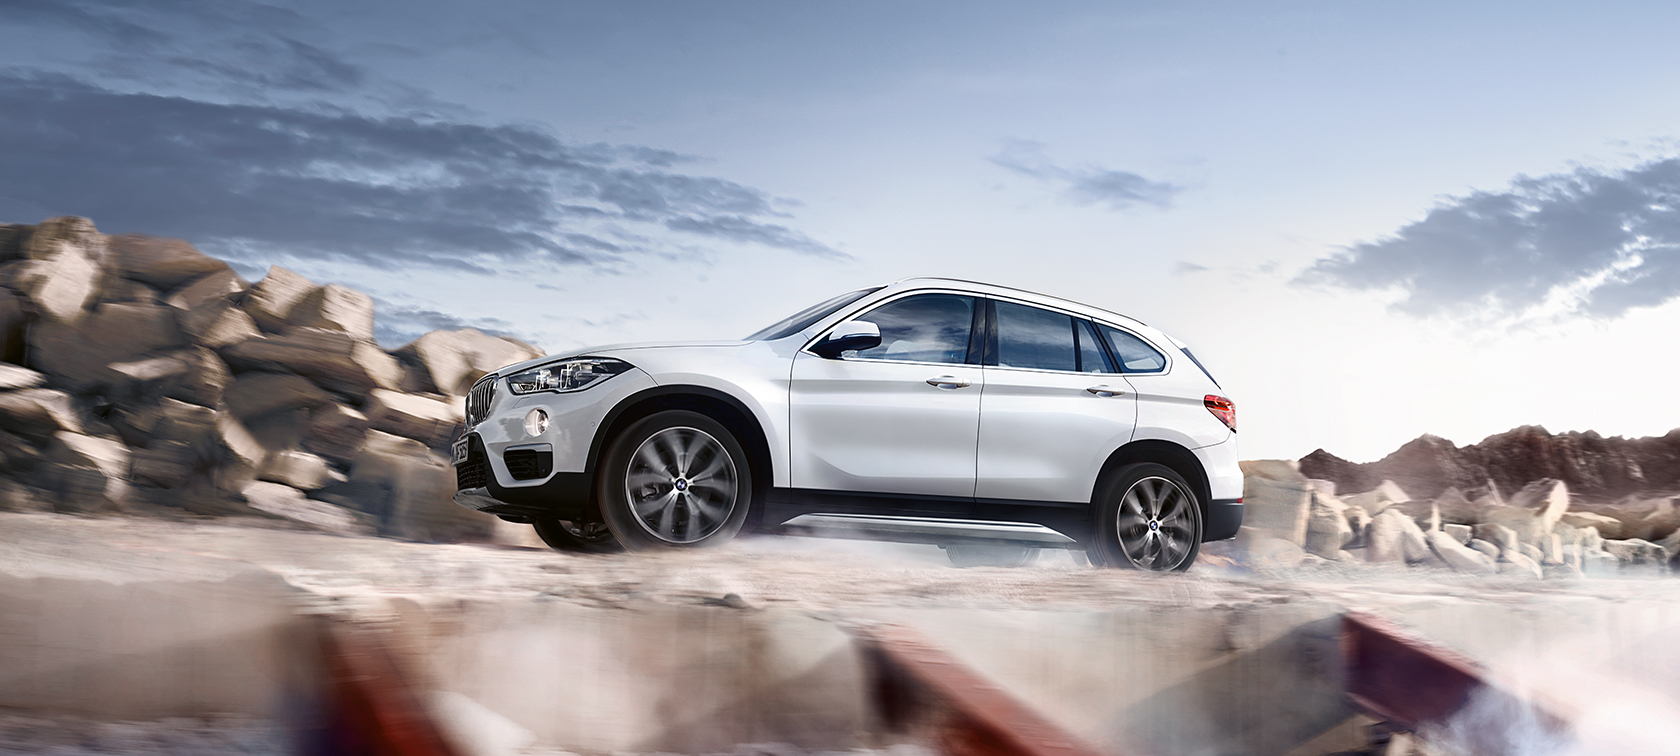 Lines & Equipment for the BMW X1